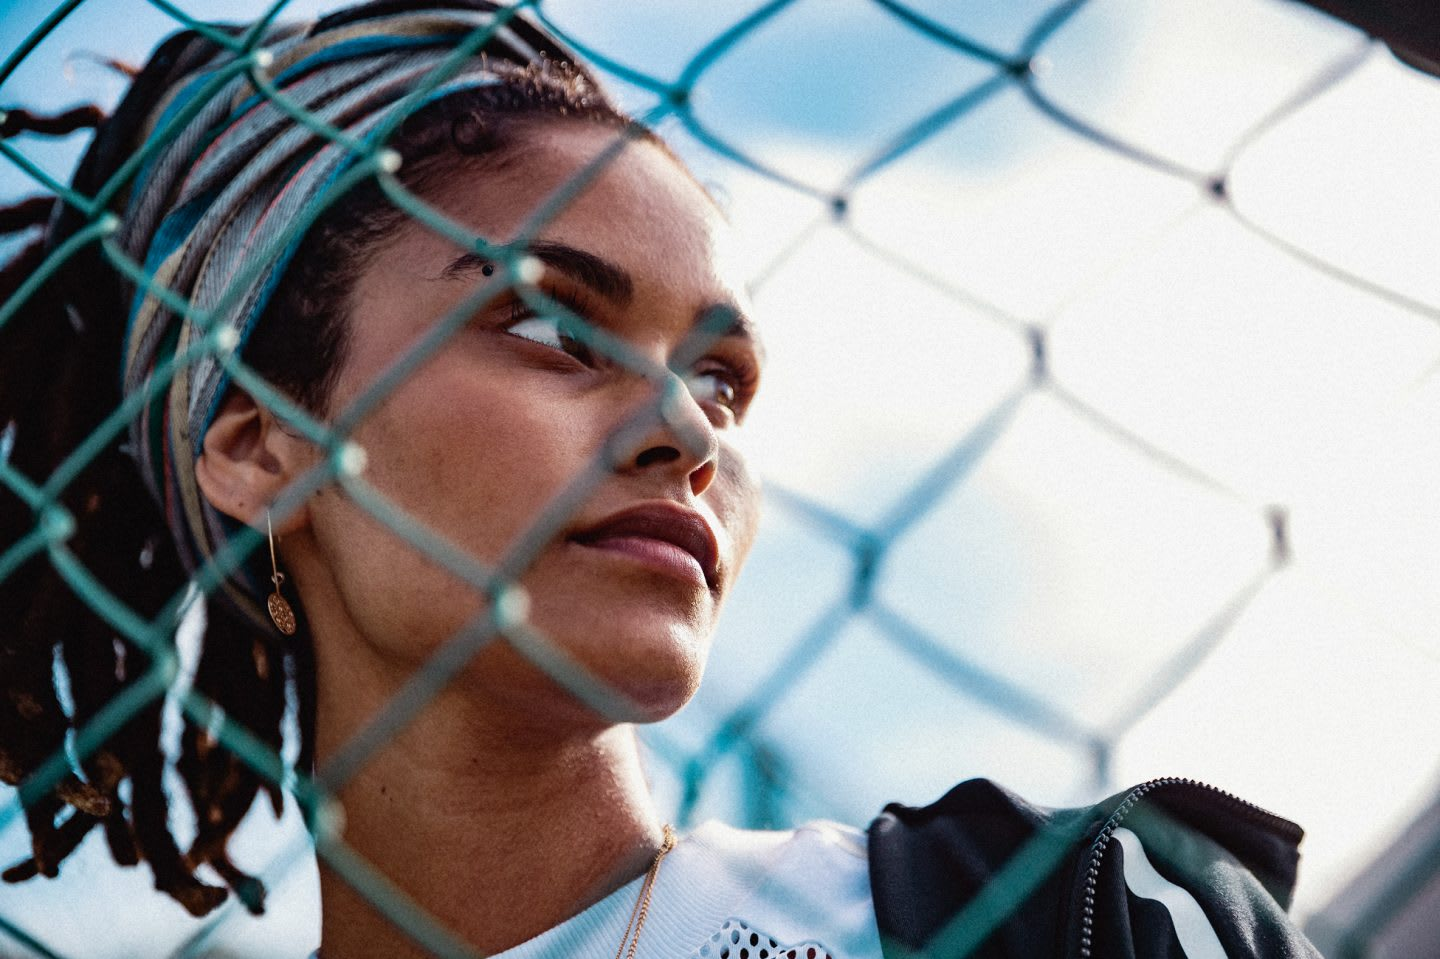 A woman looking out of the image behind a fence. mental health, podcast, health, lifestyle, adidas, GamePlan A